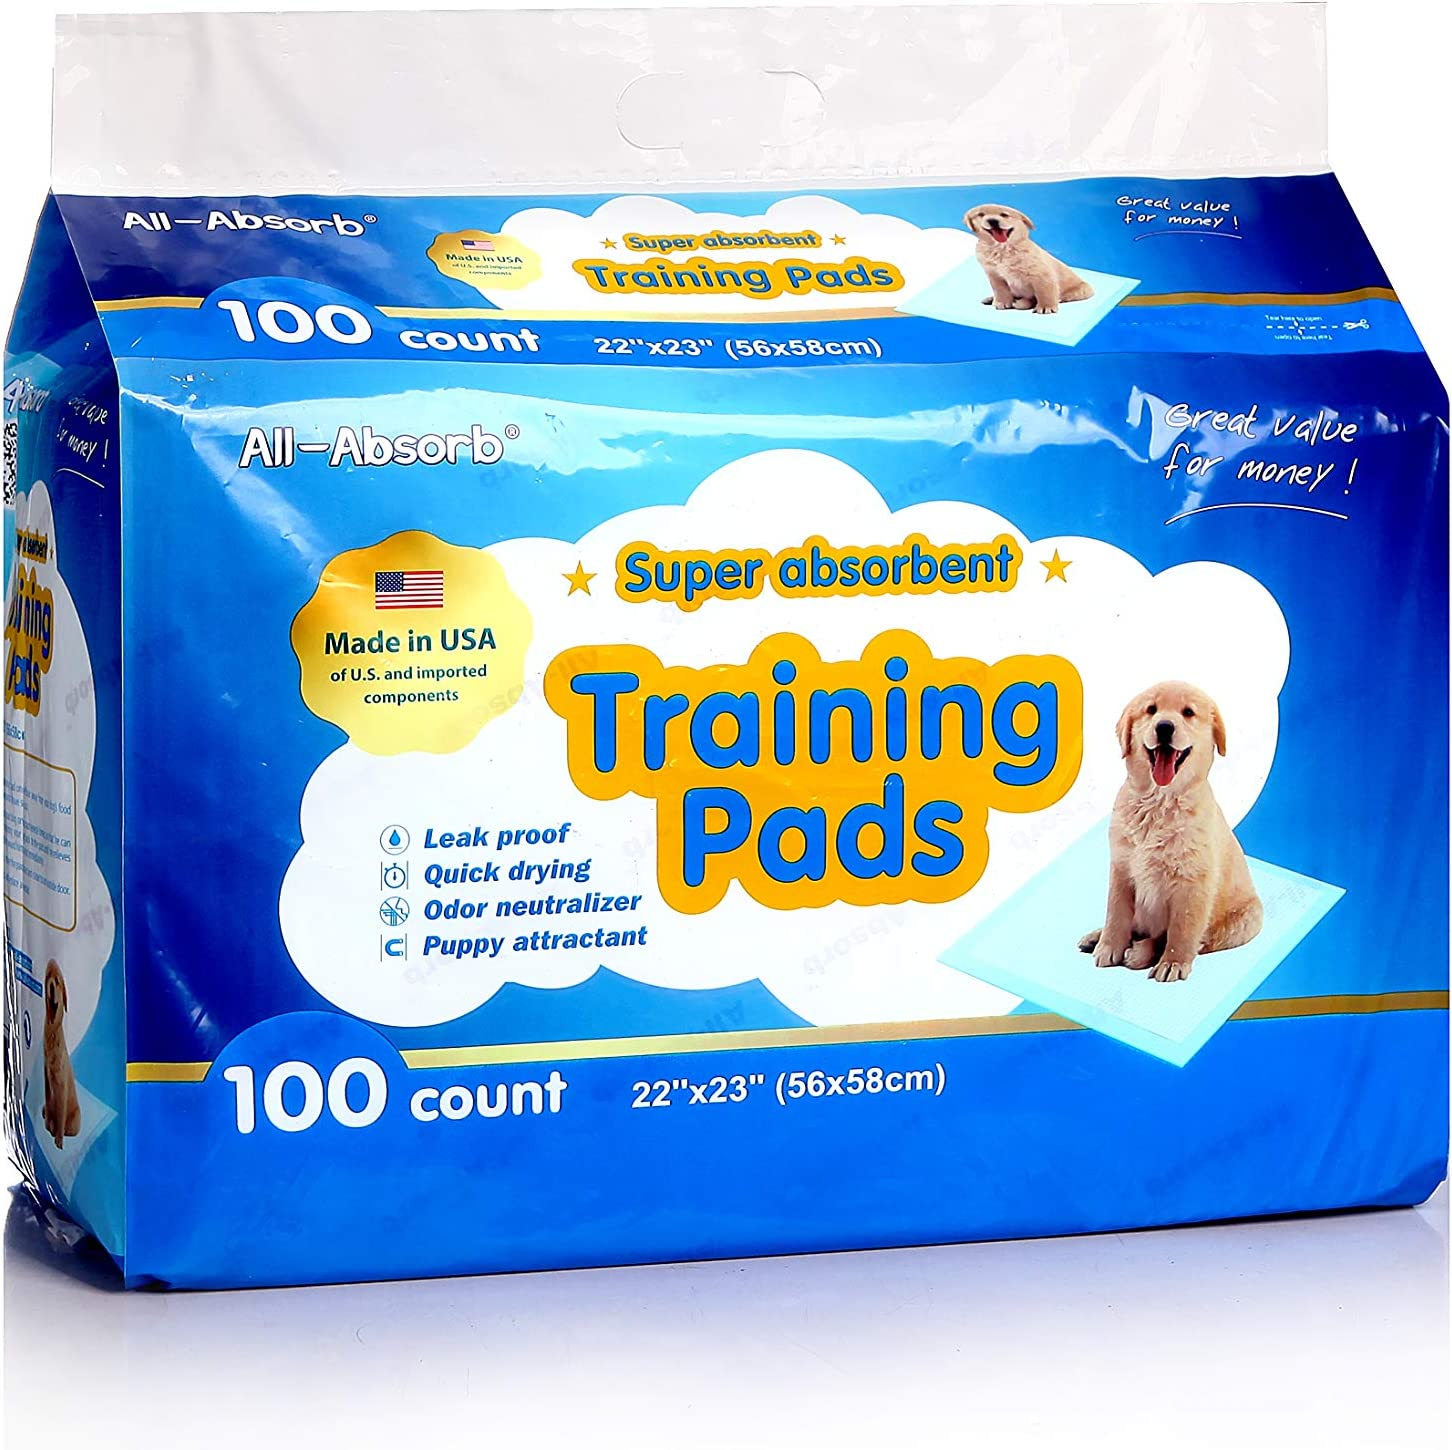 All-Absorb A01 Training Pads 22-inch By 23-inch, Pack of 100 : Pet Training Pads : Pet Supplies